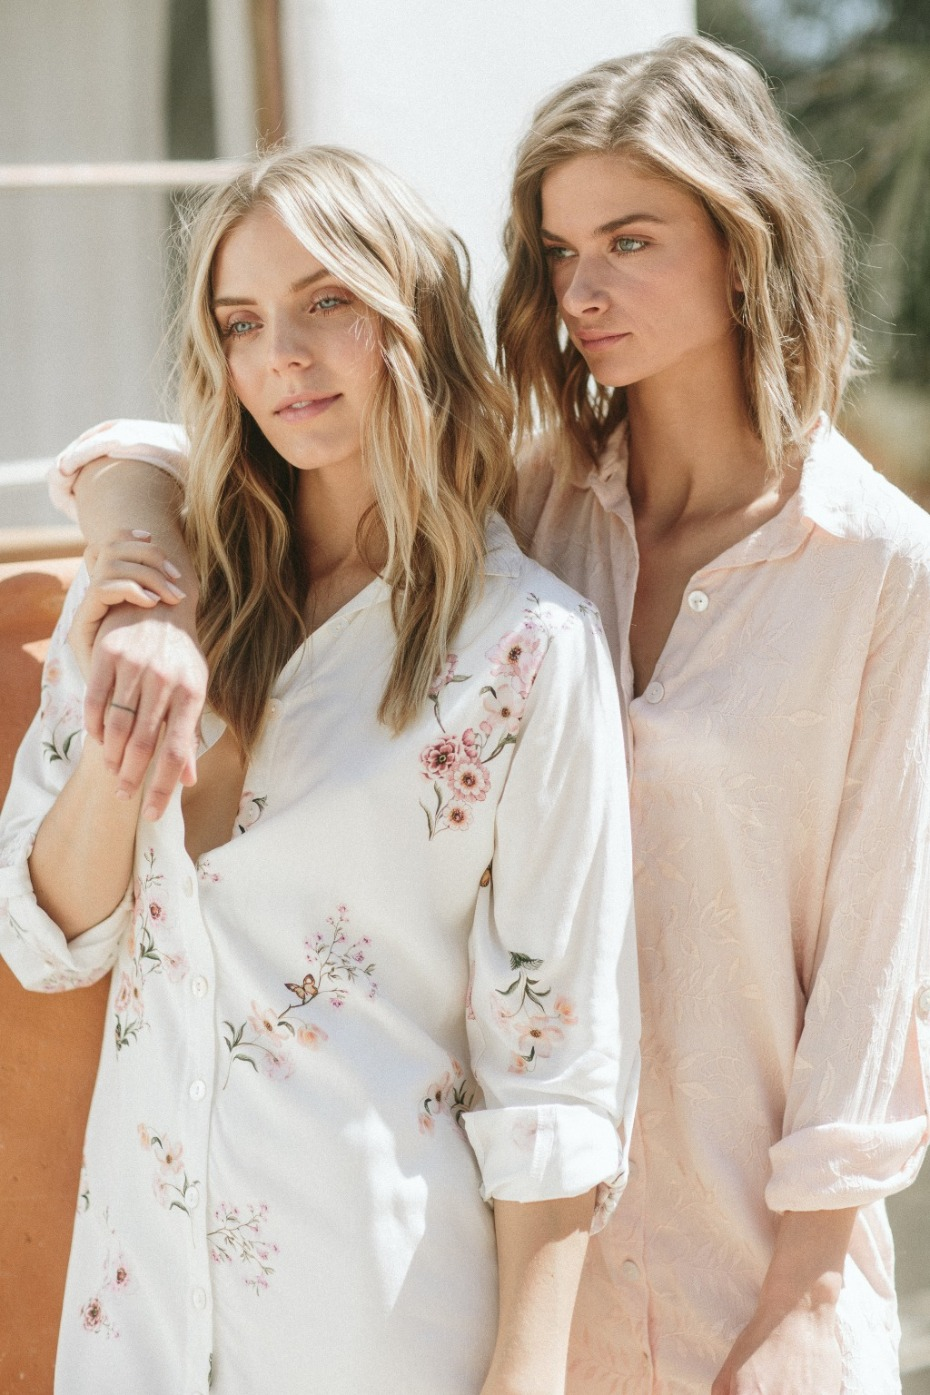 Get Ready in Boyfriend Shirts from Plum Pretty Sugar